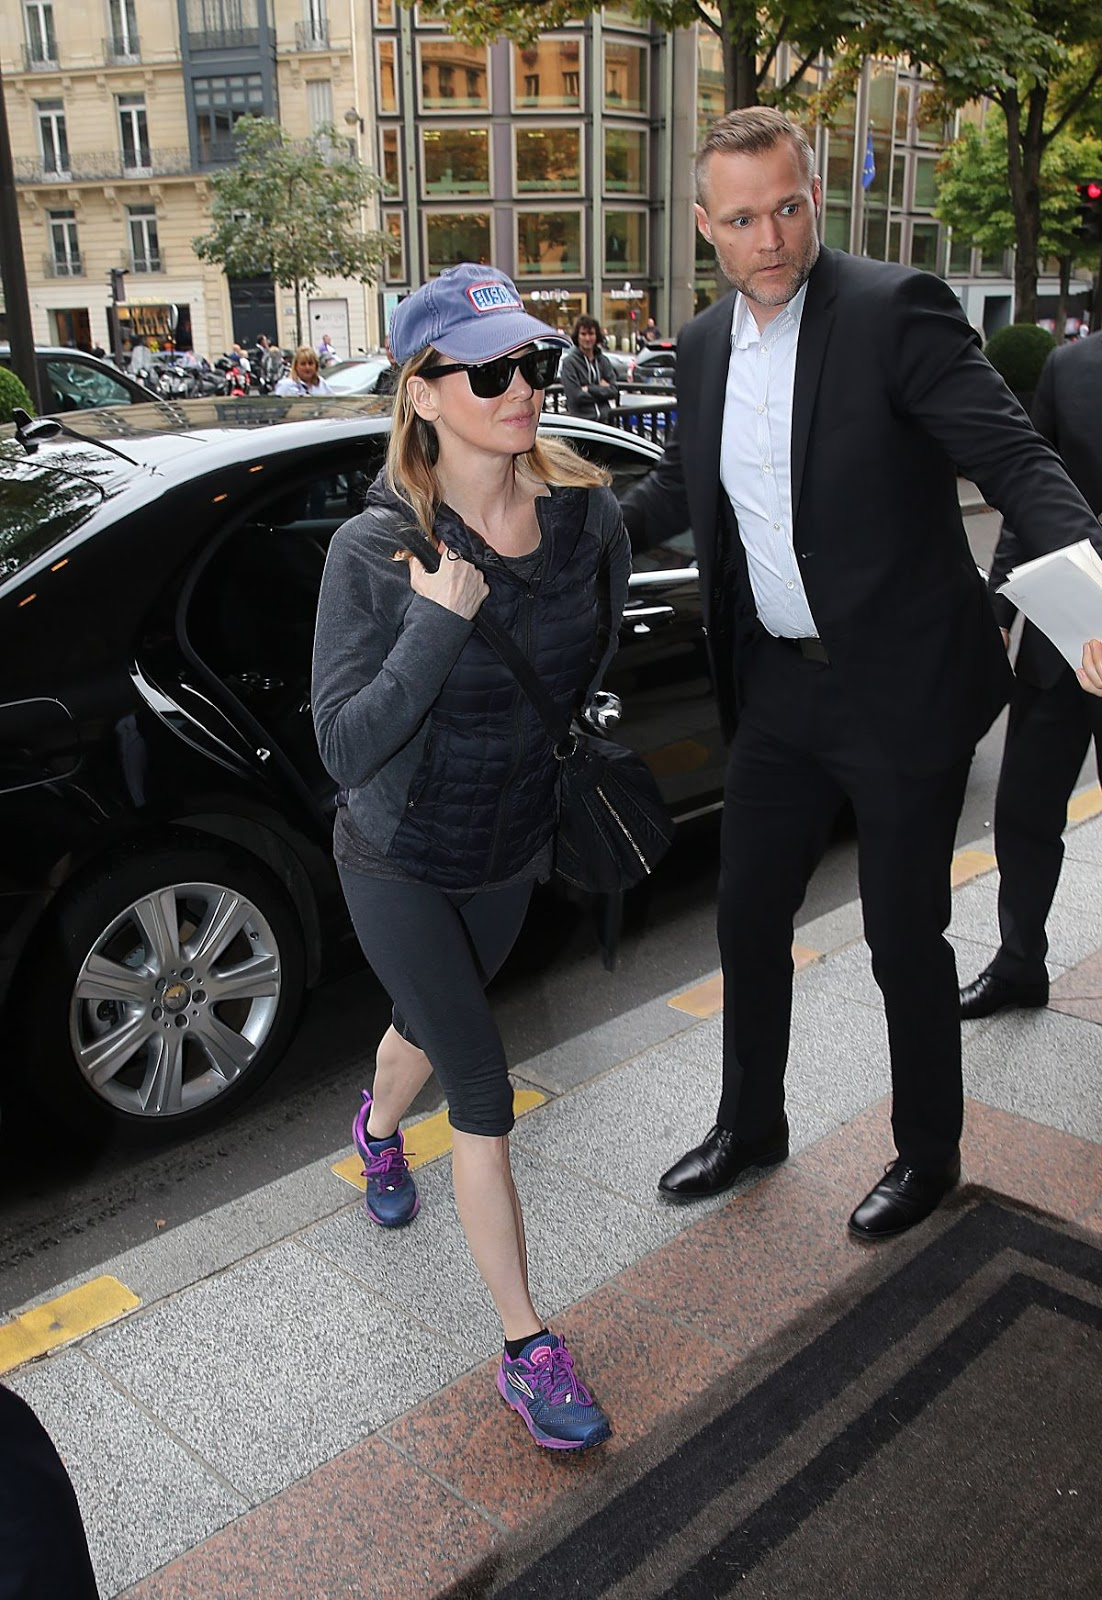 HD Photos & Wallpapers of Renee Zellweger Arrives At Her Hotel In Paris